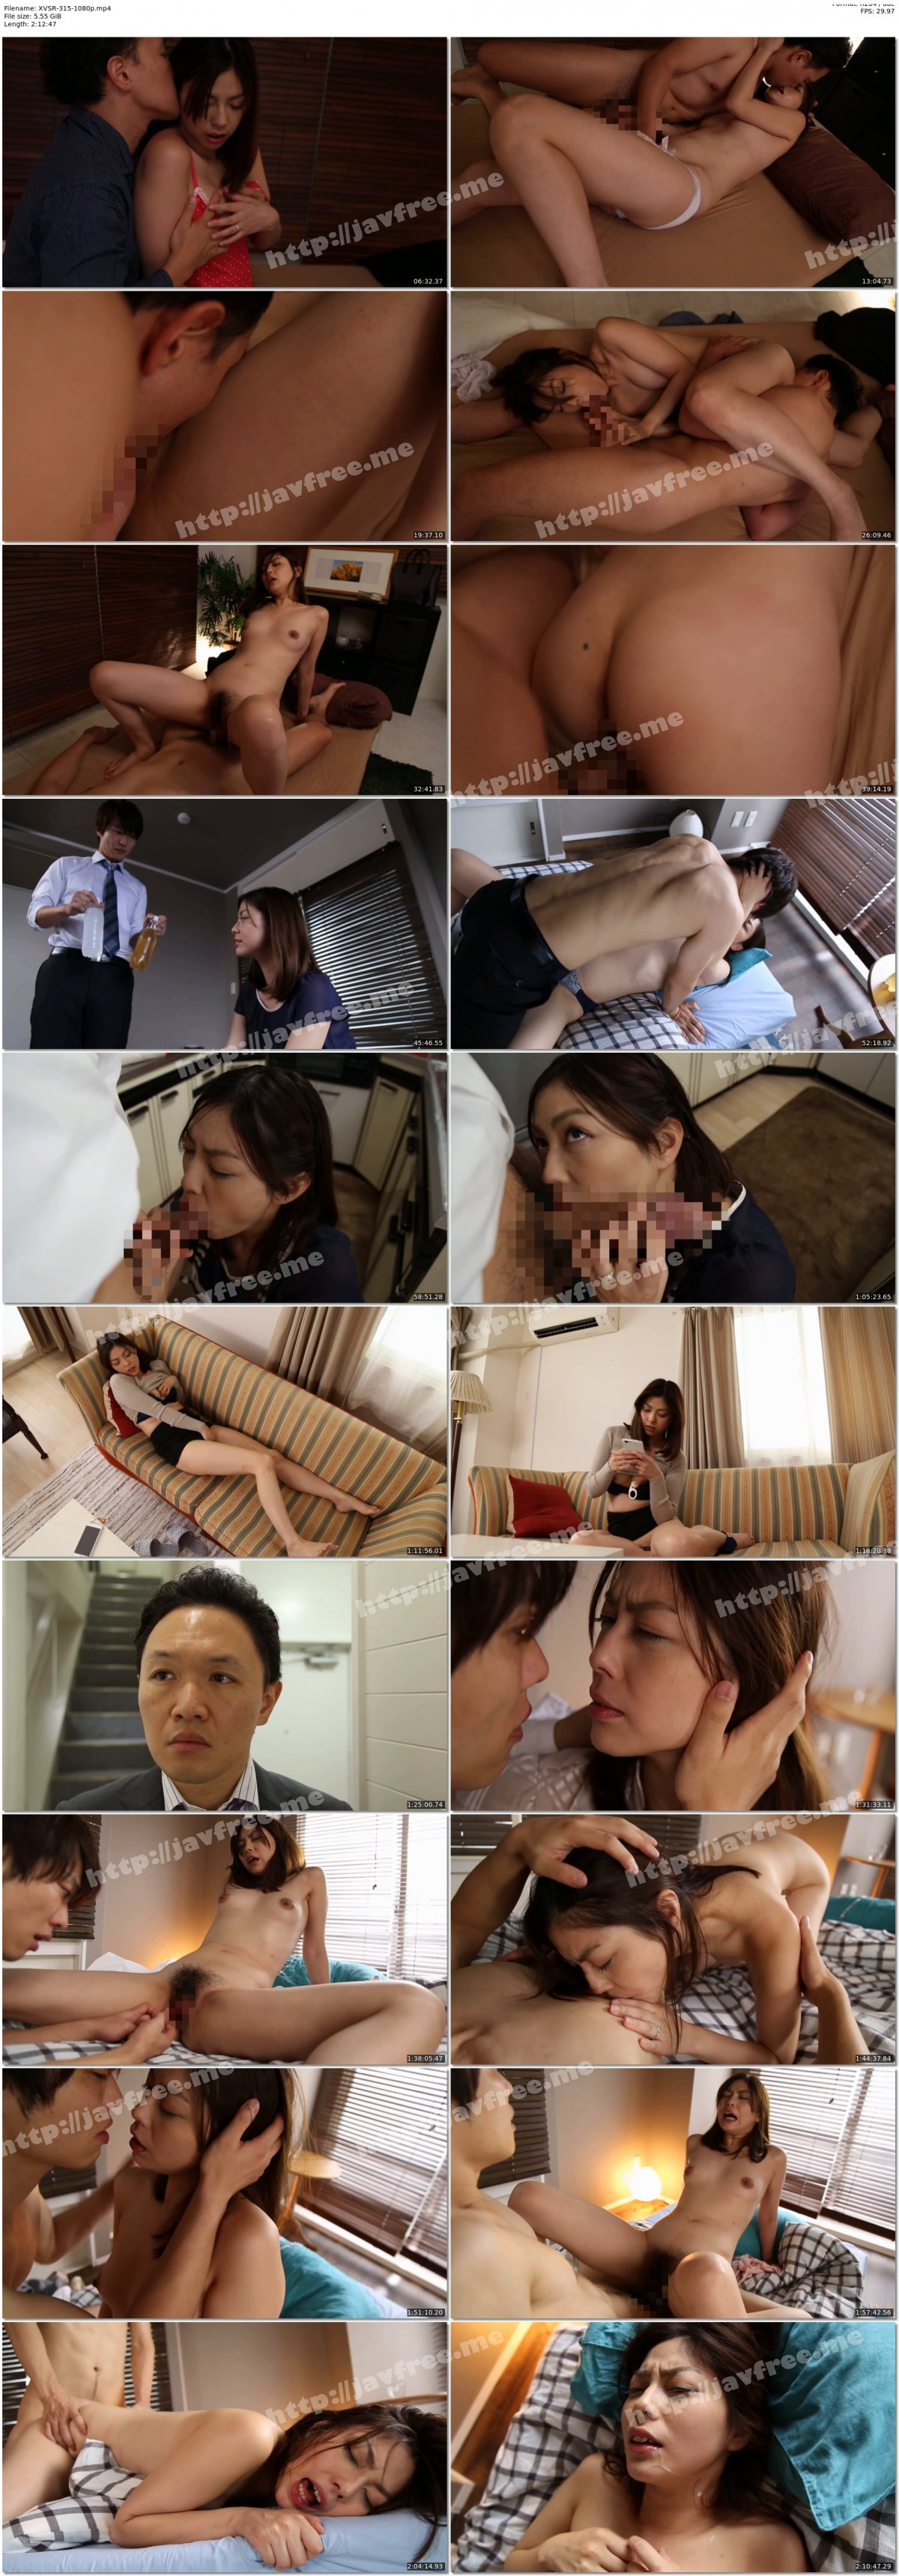 [HD][XVSR-315] 昼顔の贖罪 卯水咲流 - image XVSR-315-1080p on https://javfree.me